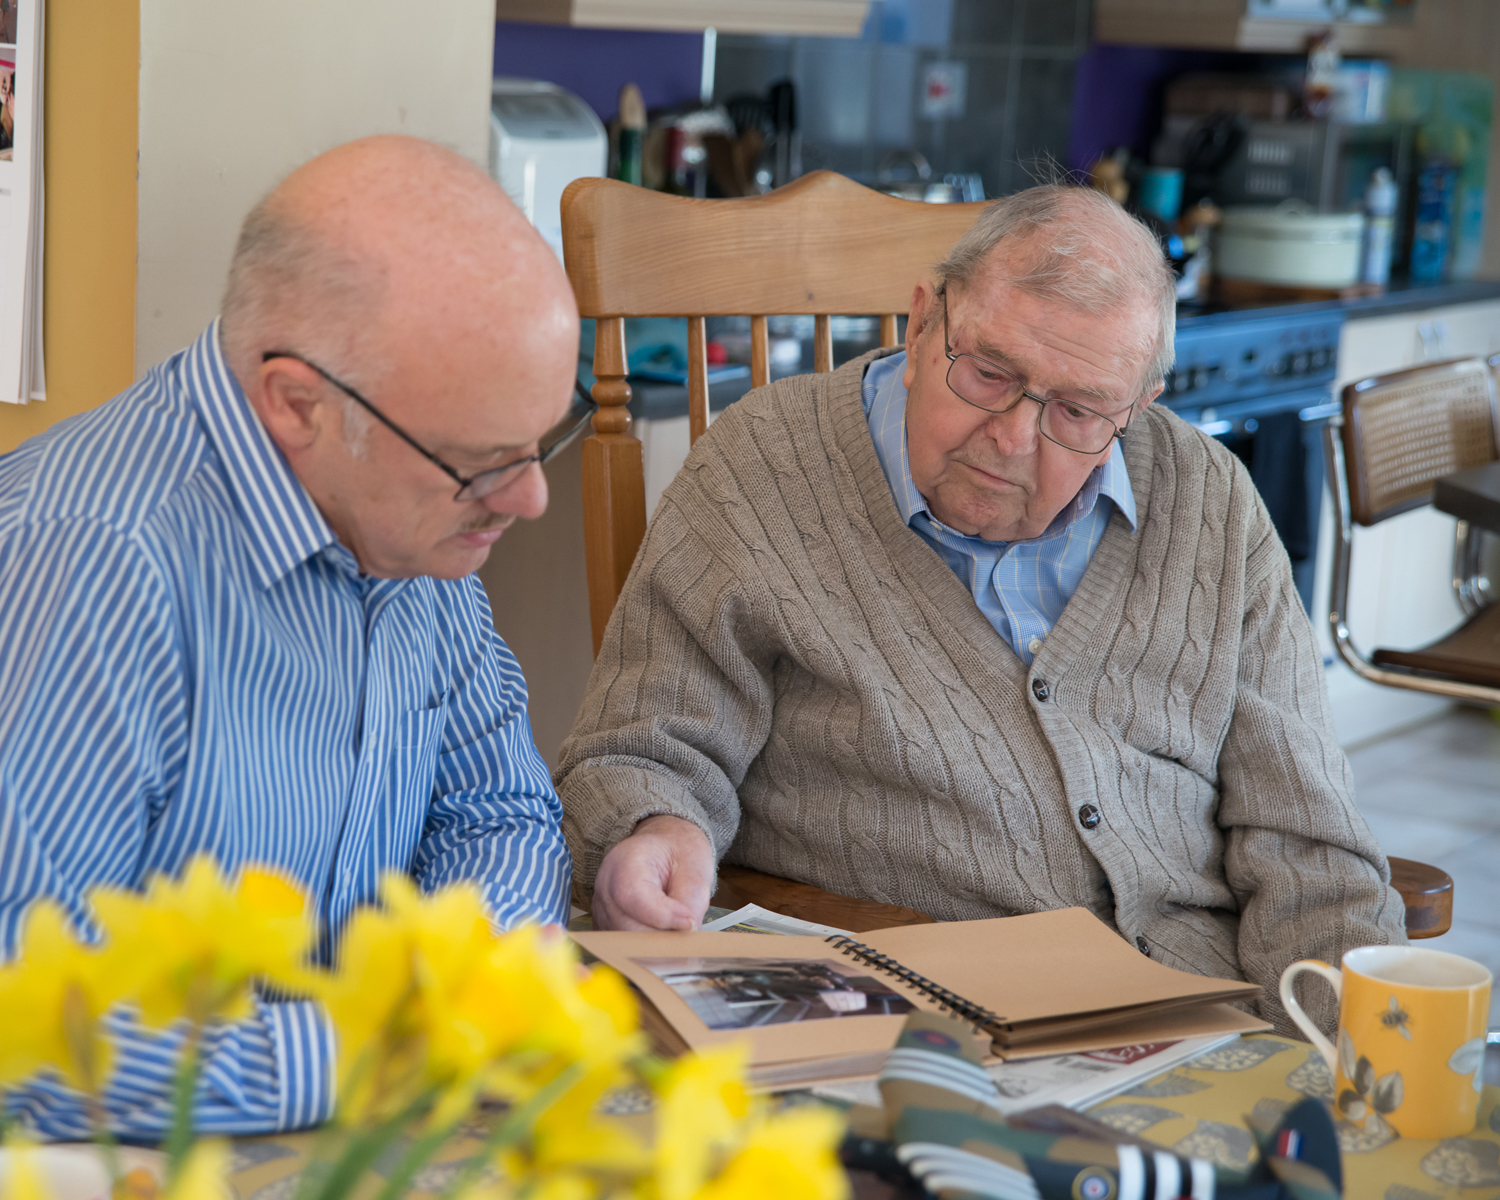 RAF Charity Seeks to Tackle Loneliness